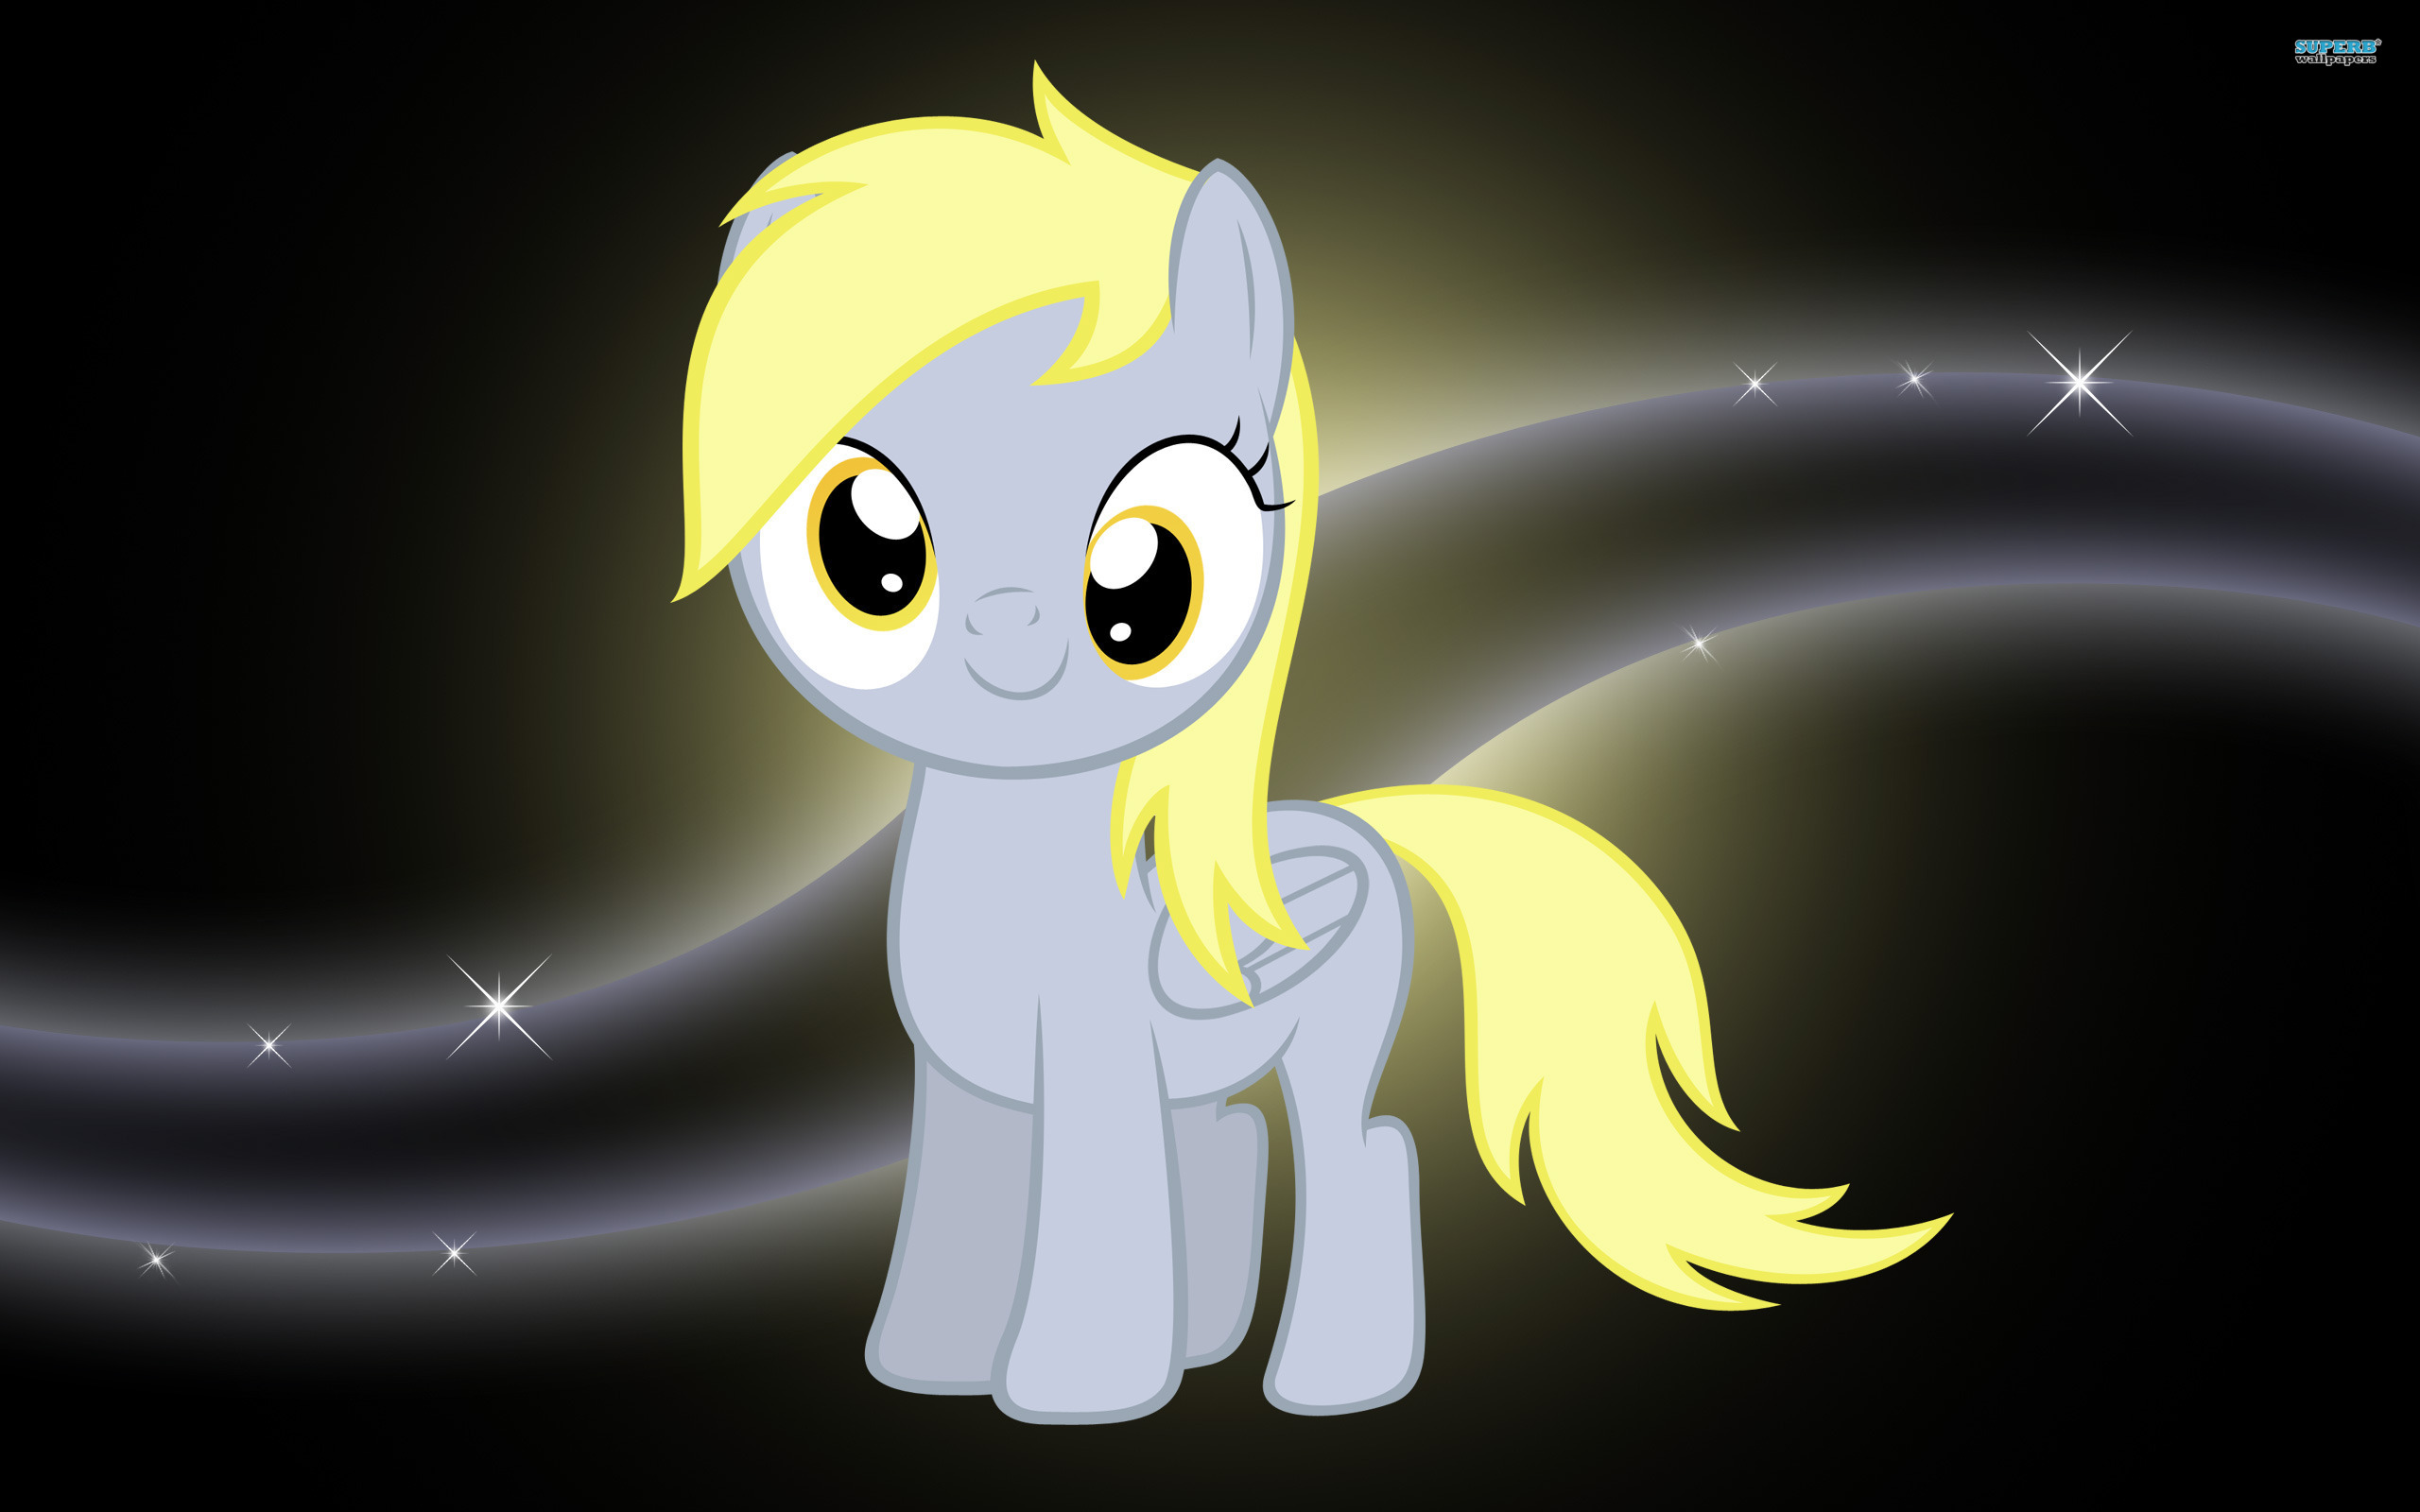 Derpy Hooves as a Filly